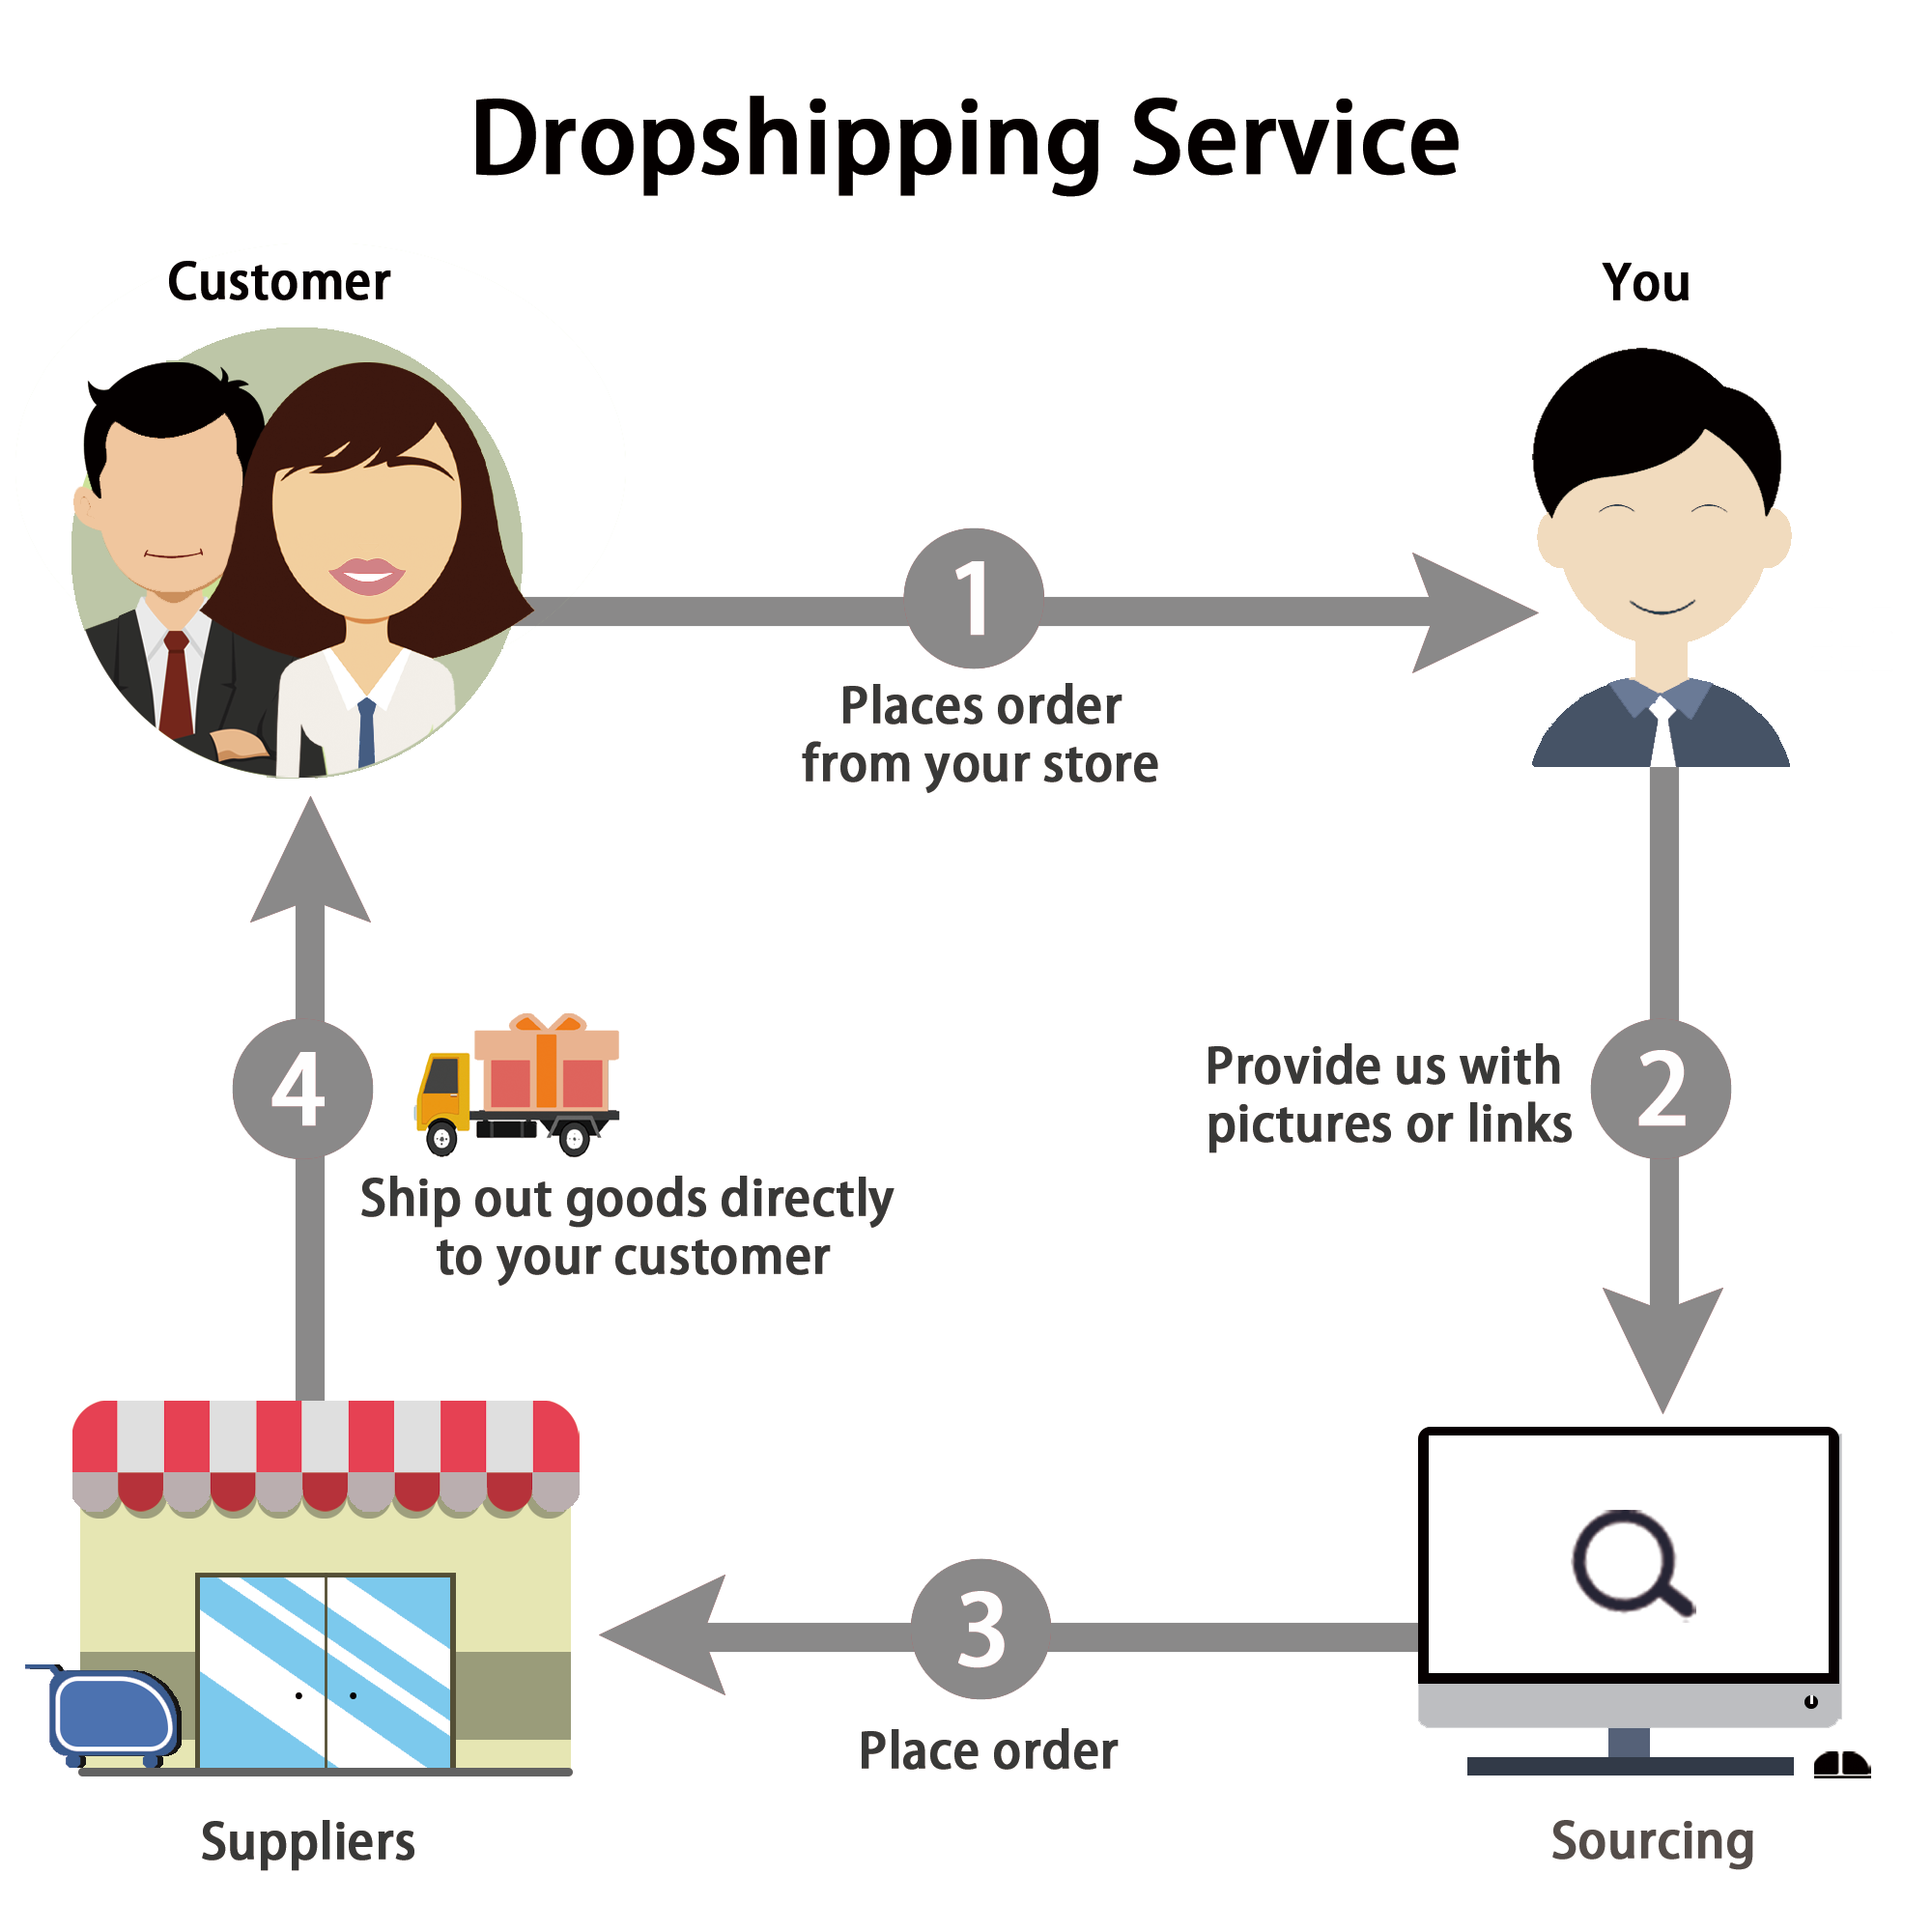 E-commerce Dropshipping Suppliers Toys Products Agent Fulfillment Sourcing Services for Shopify Sellers